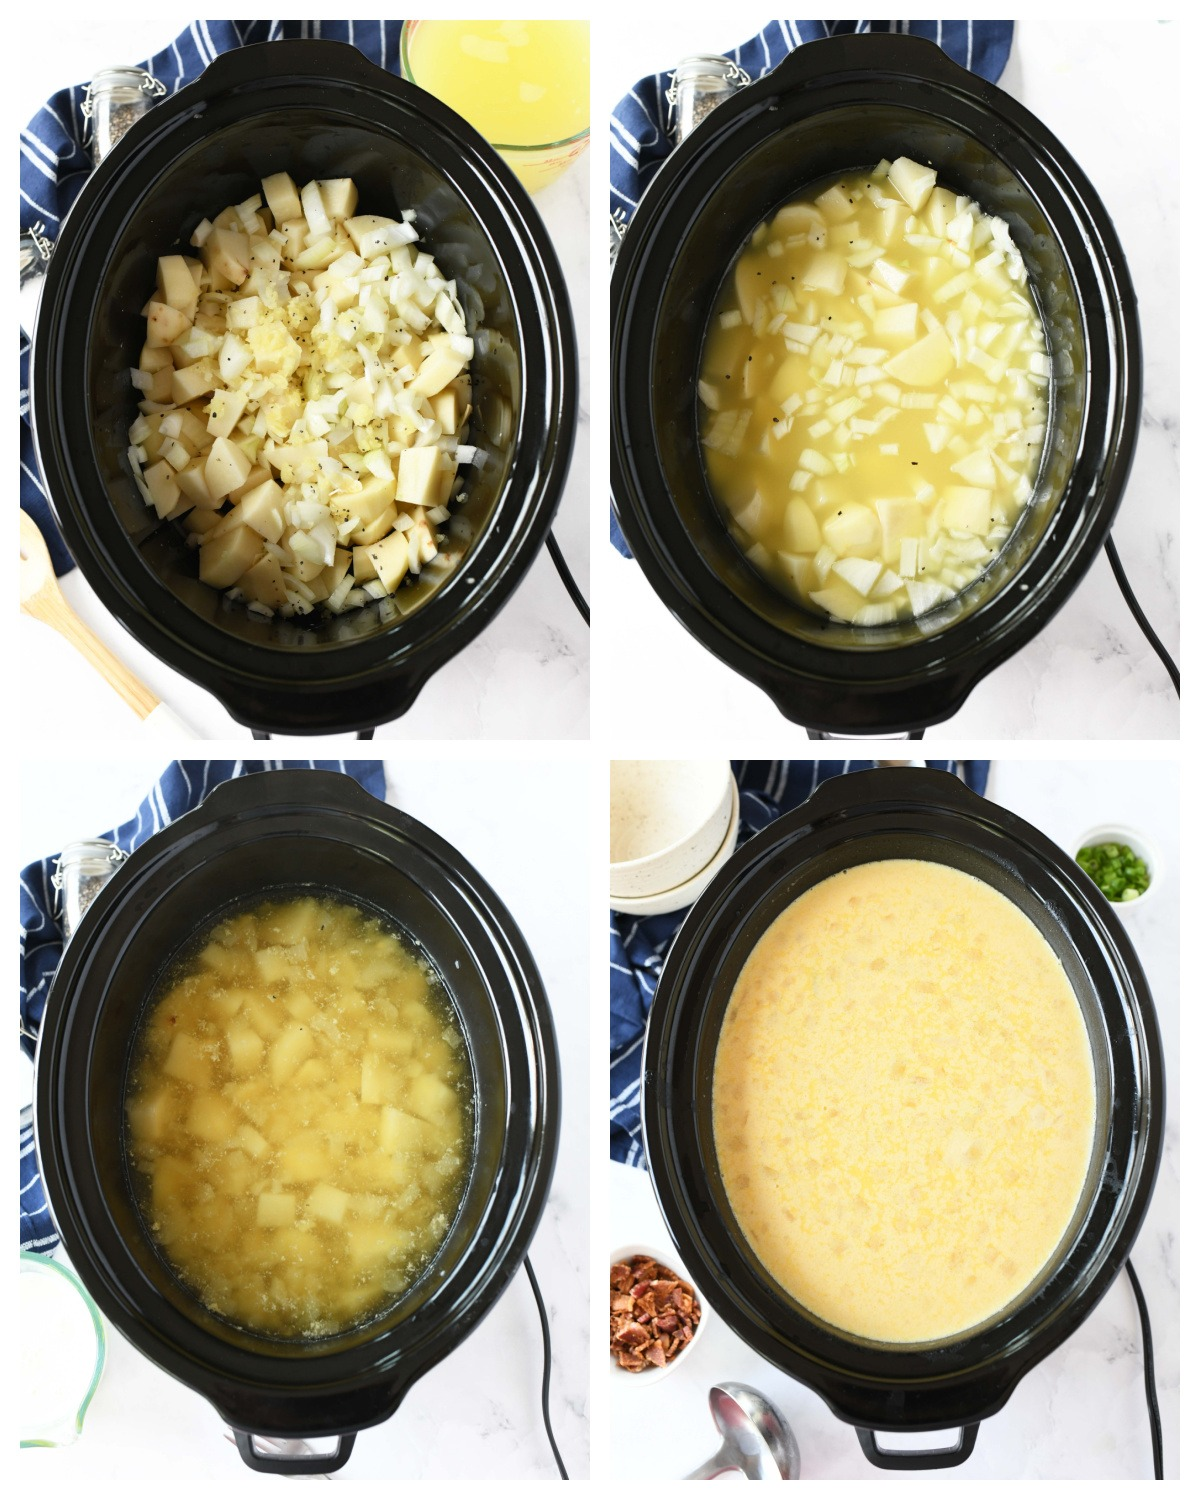 A four image collage showing how to make cheesy potato soup.